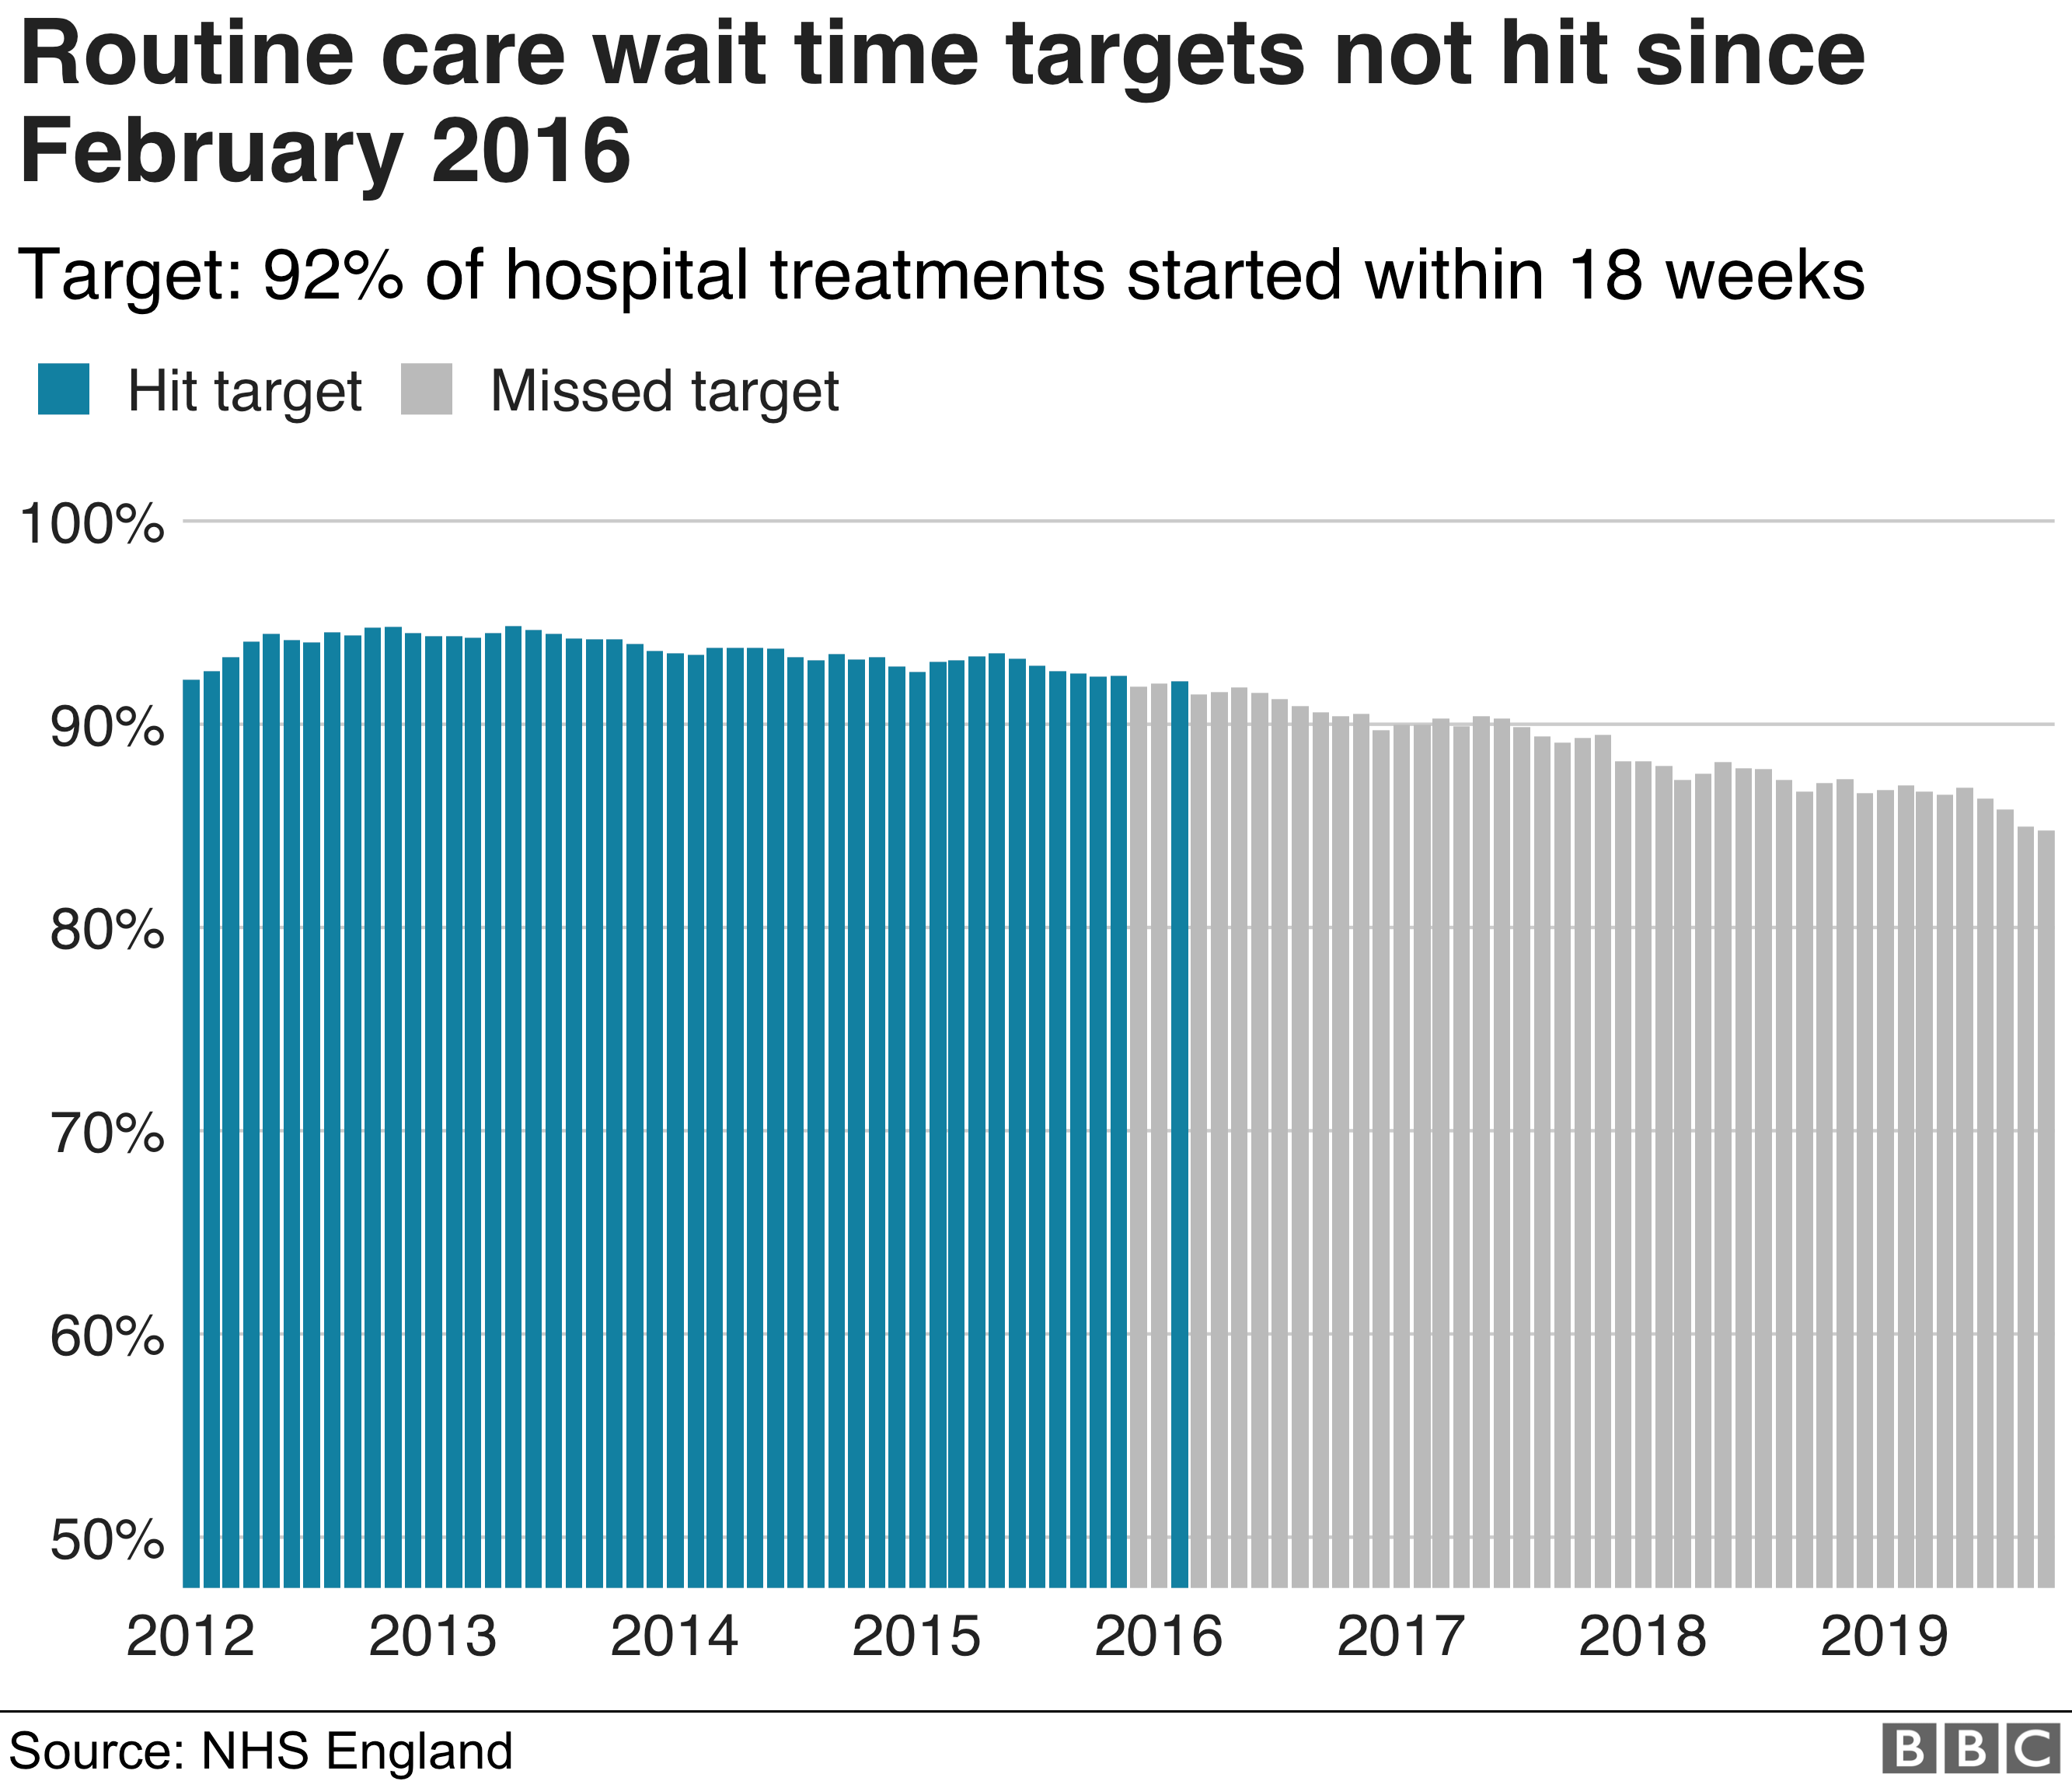 Chart showing routine operations targets